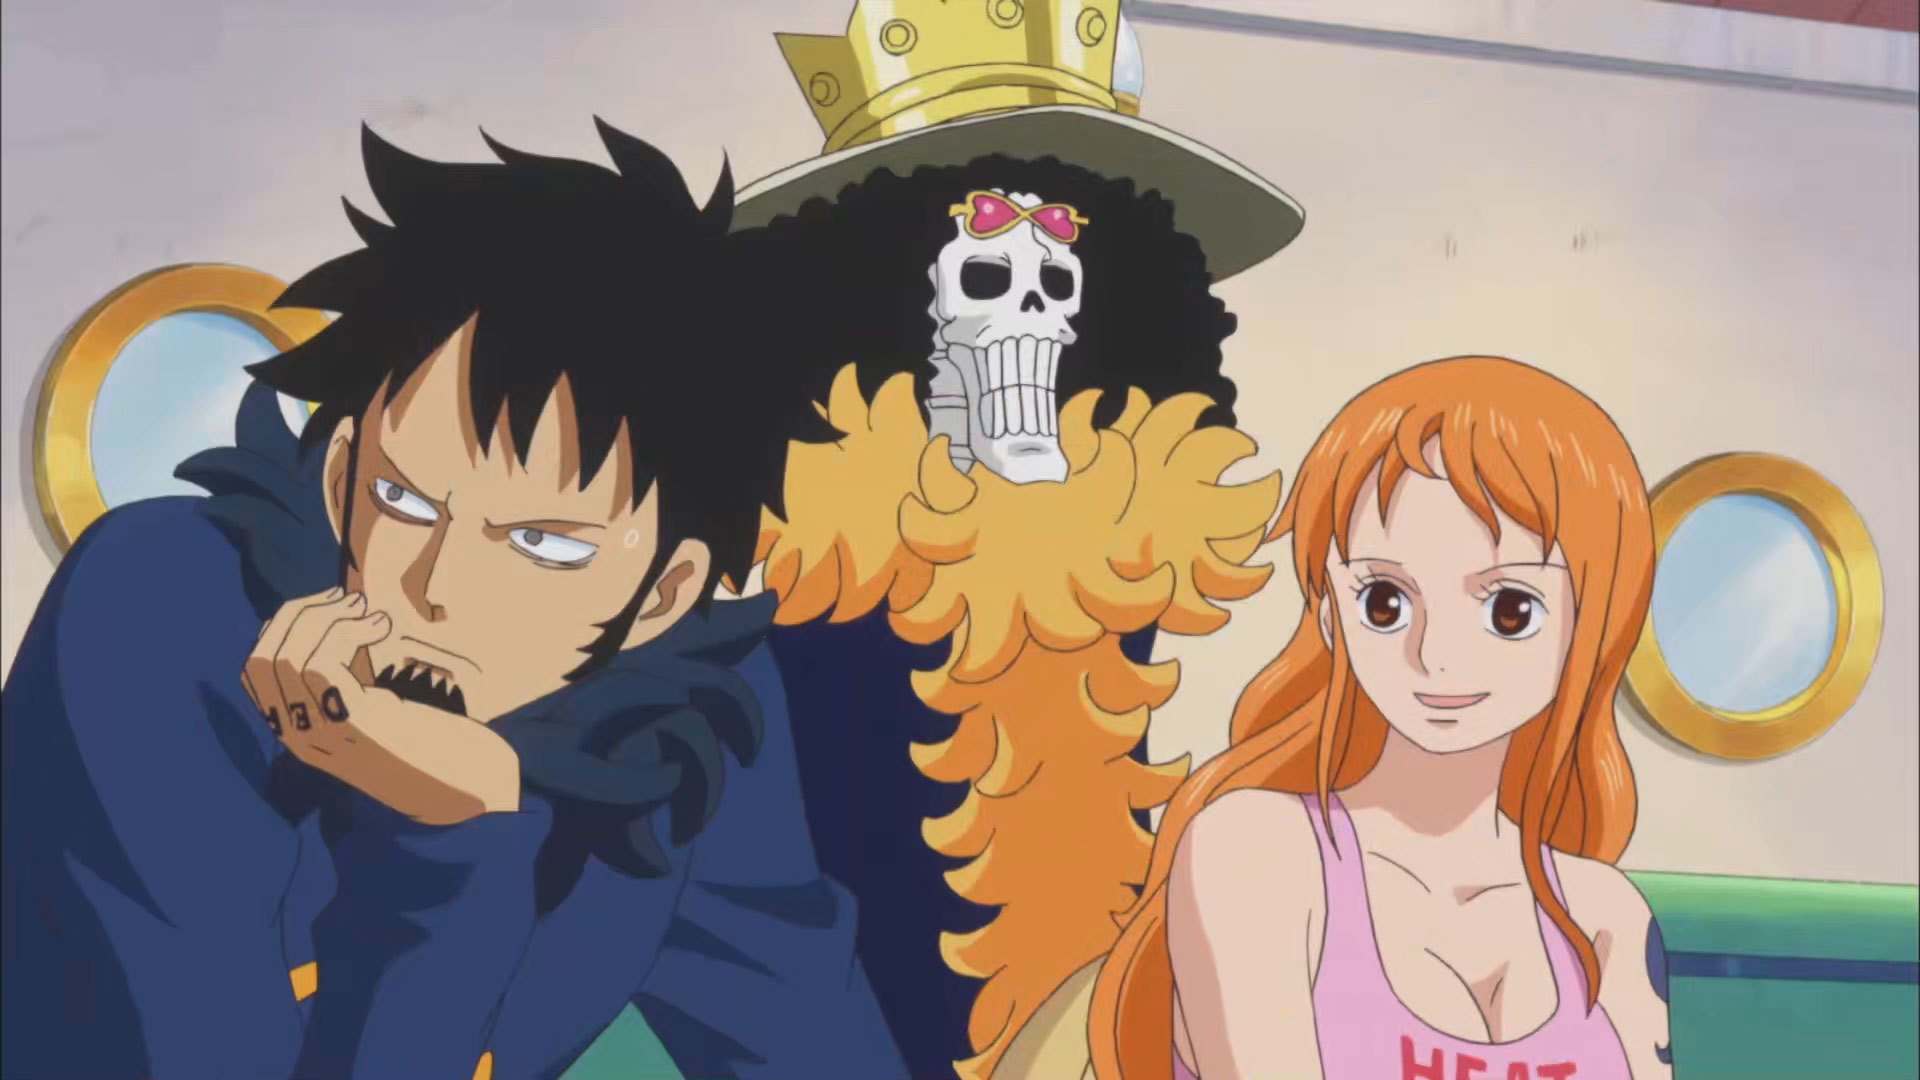 Nami and Law